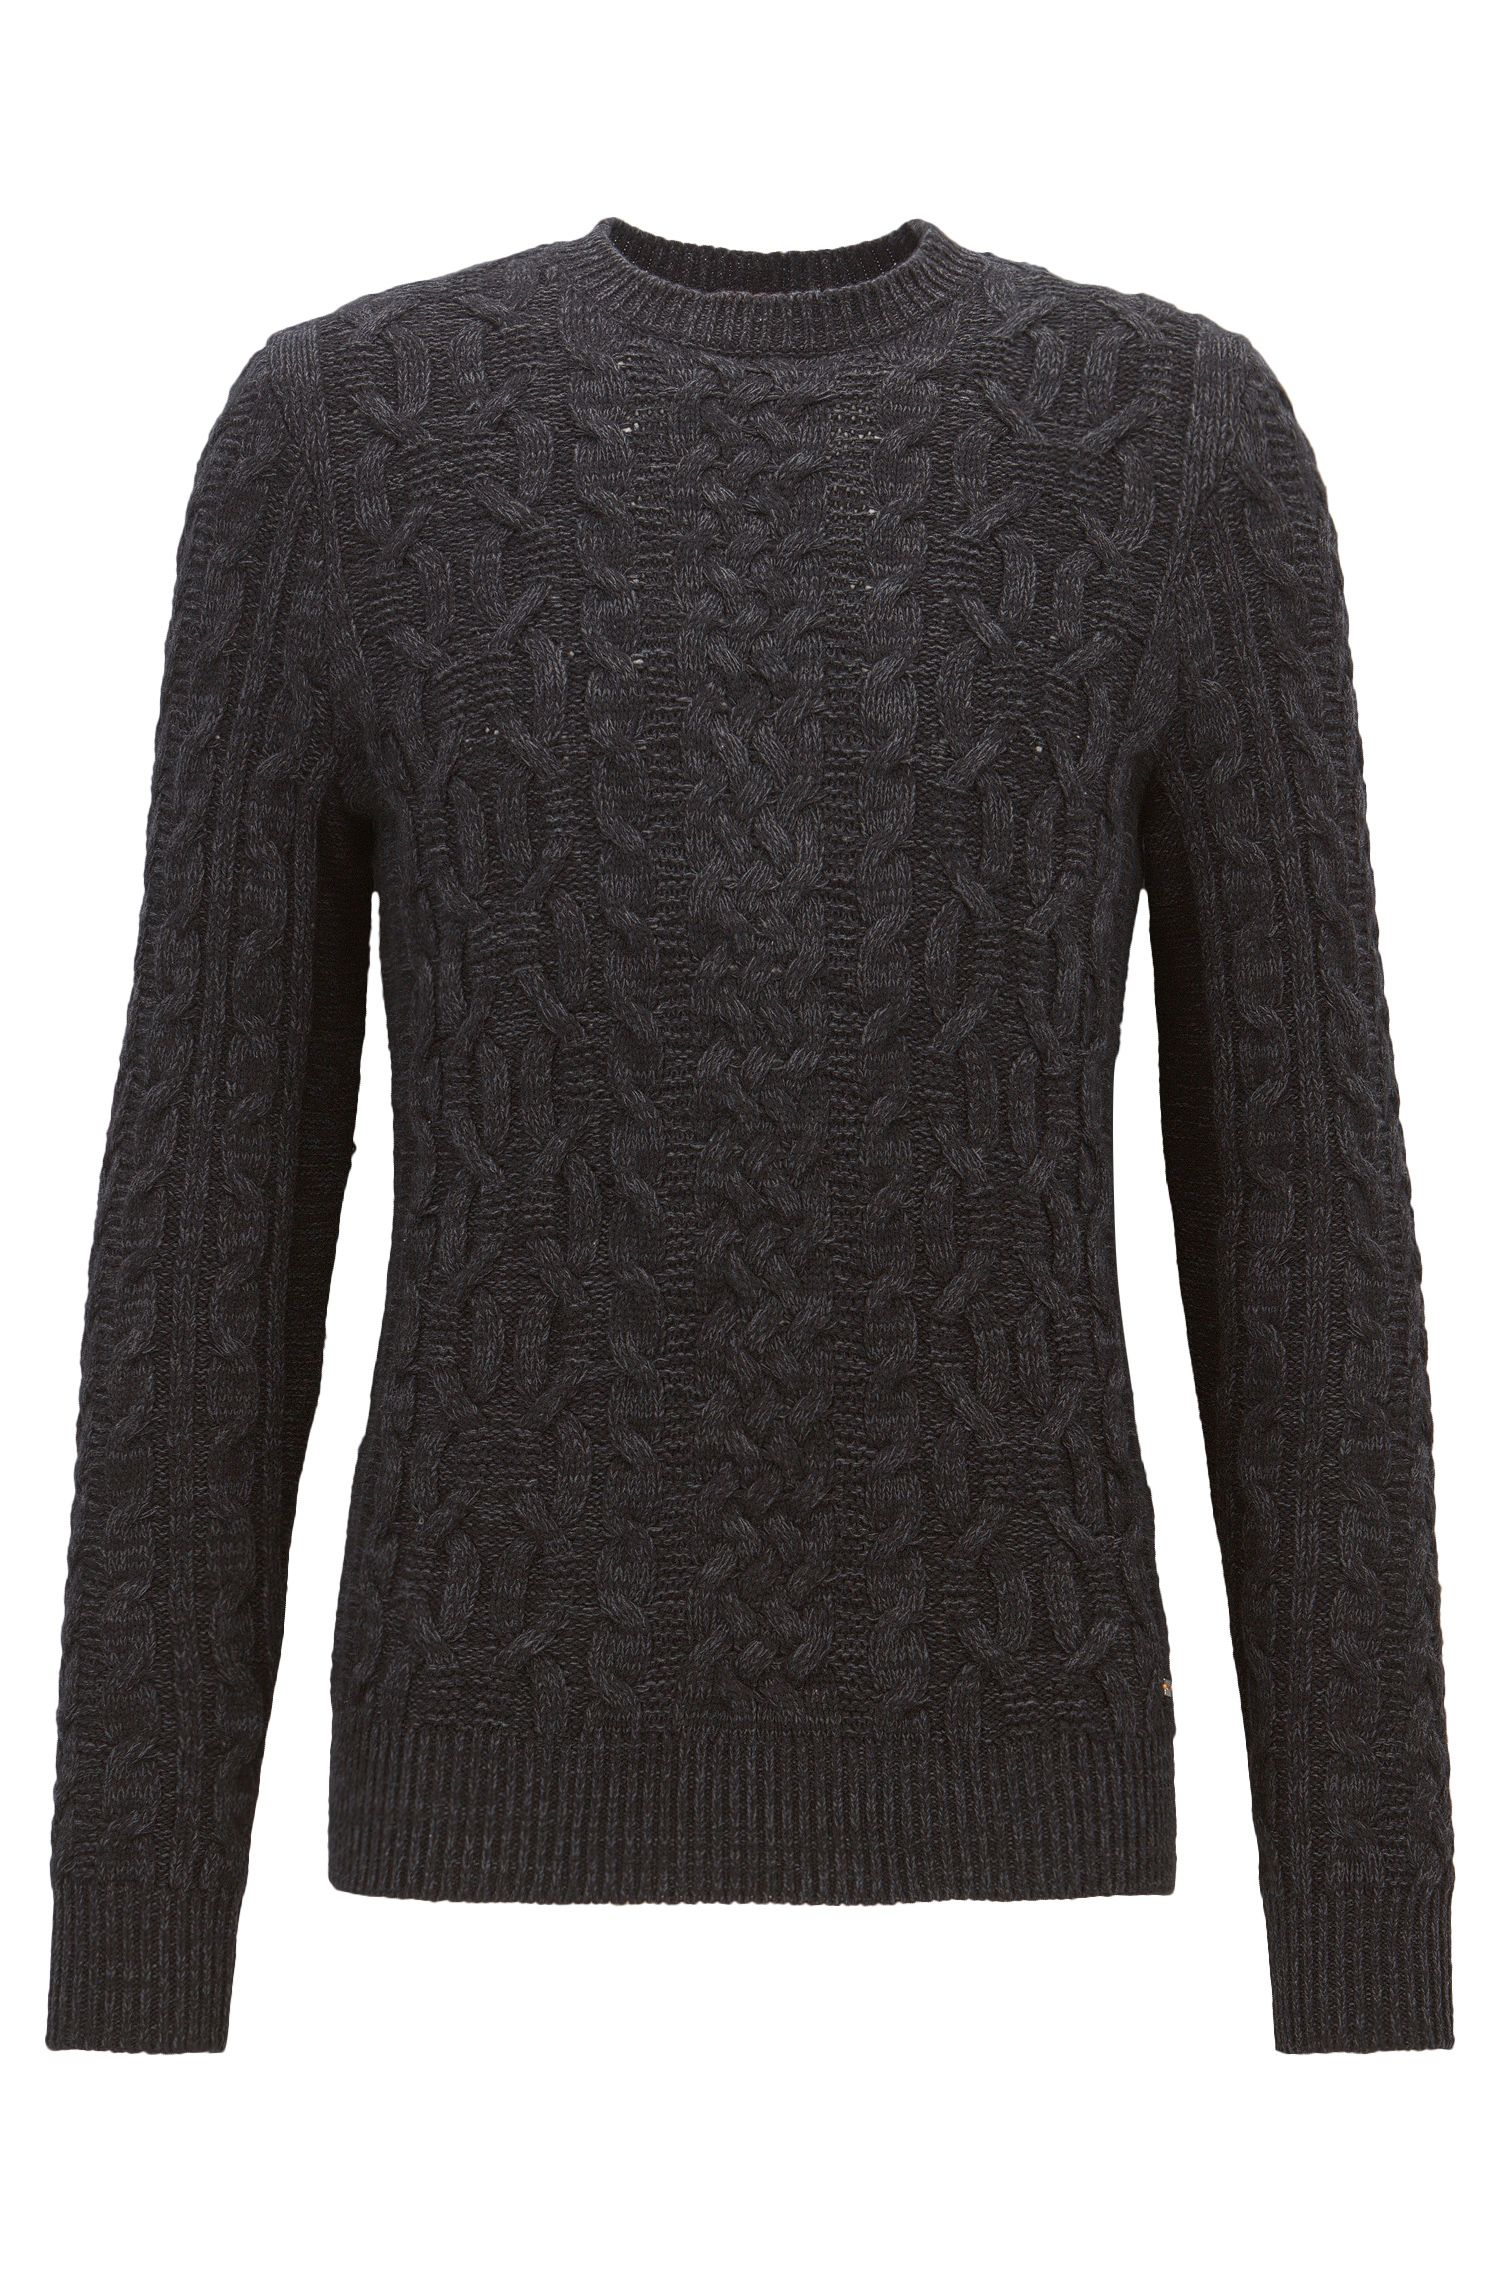 Cable-knit sweater in a cotton blend